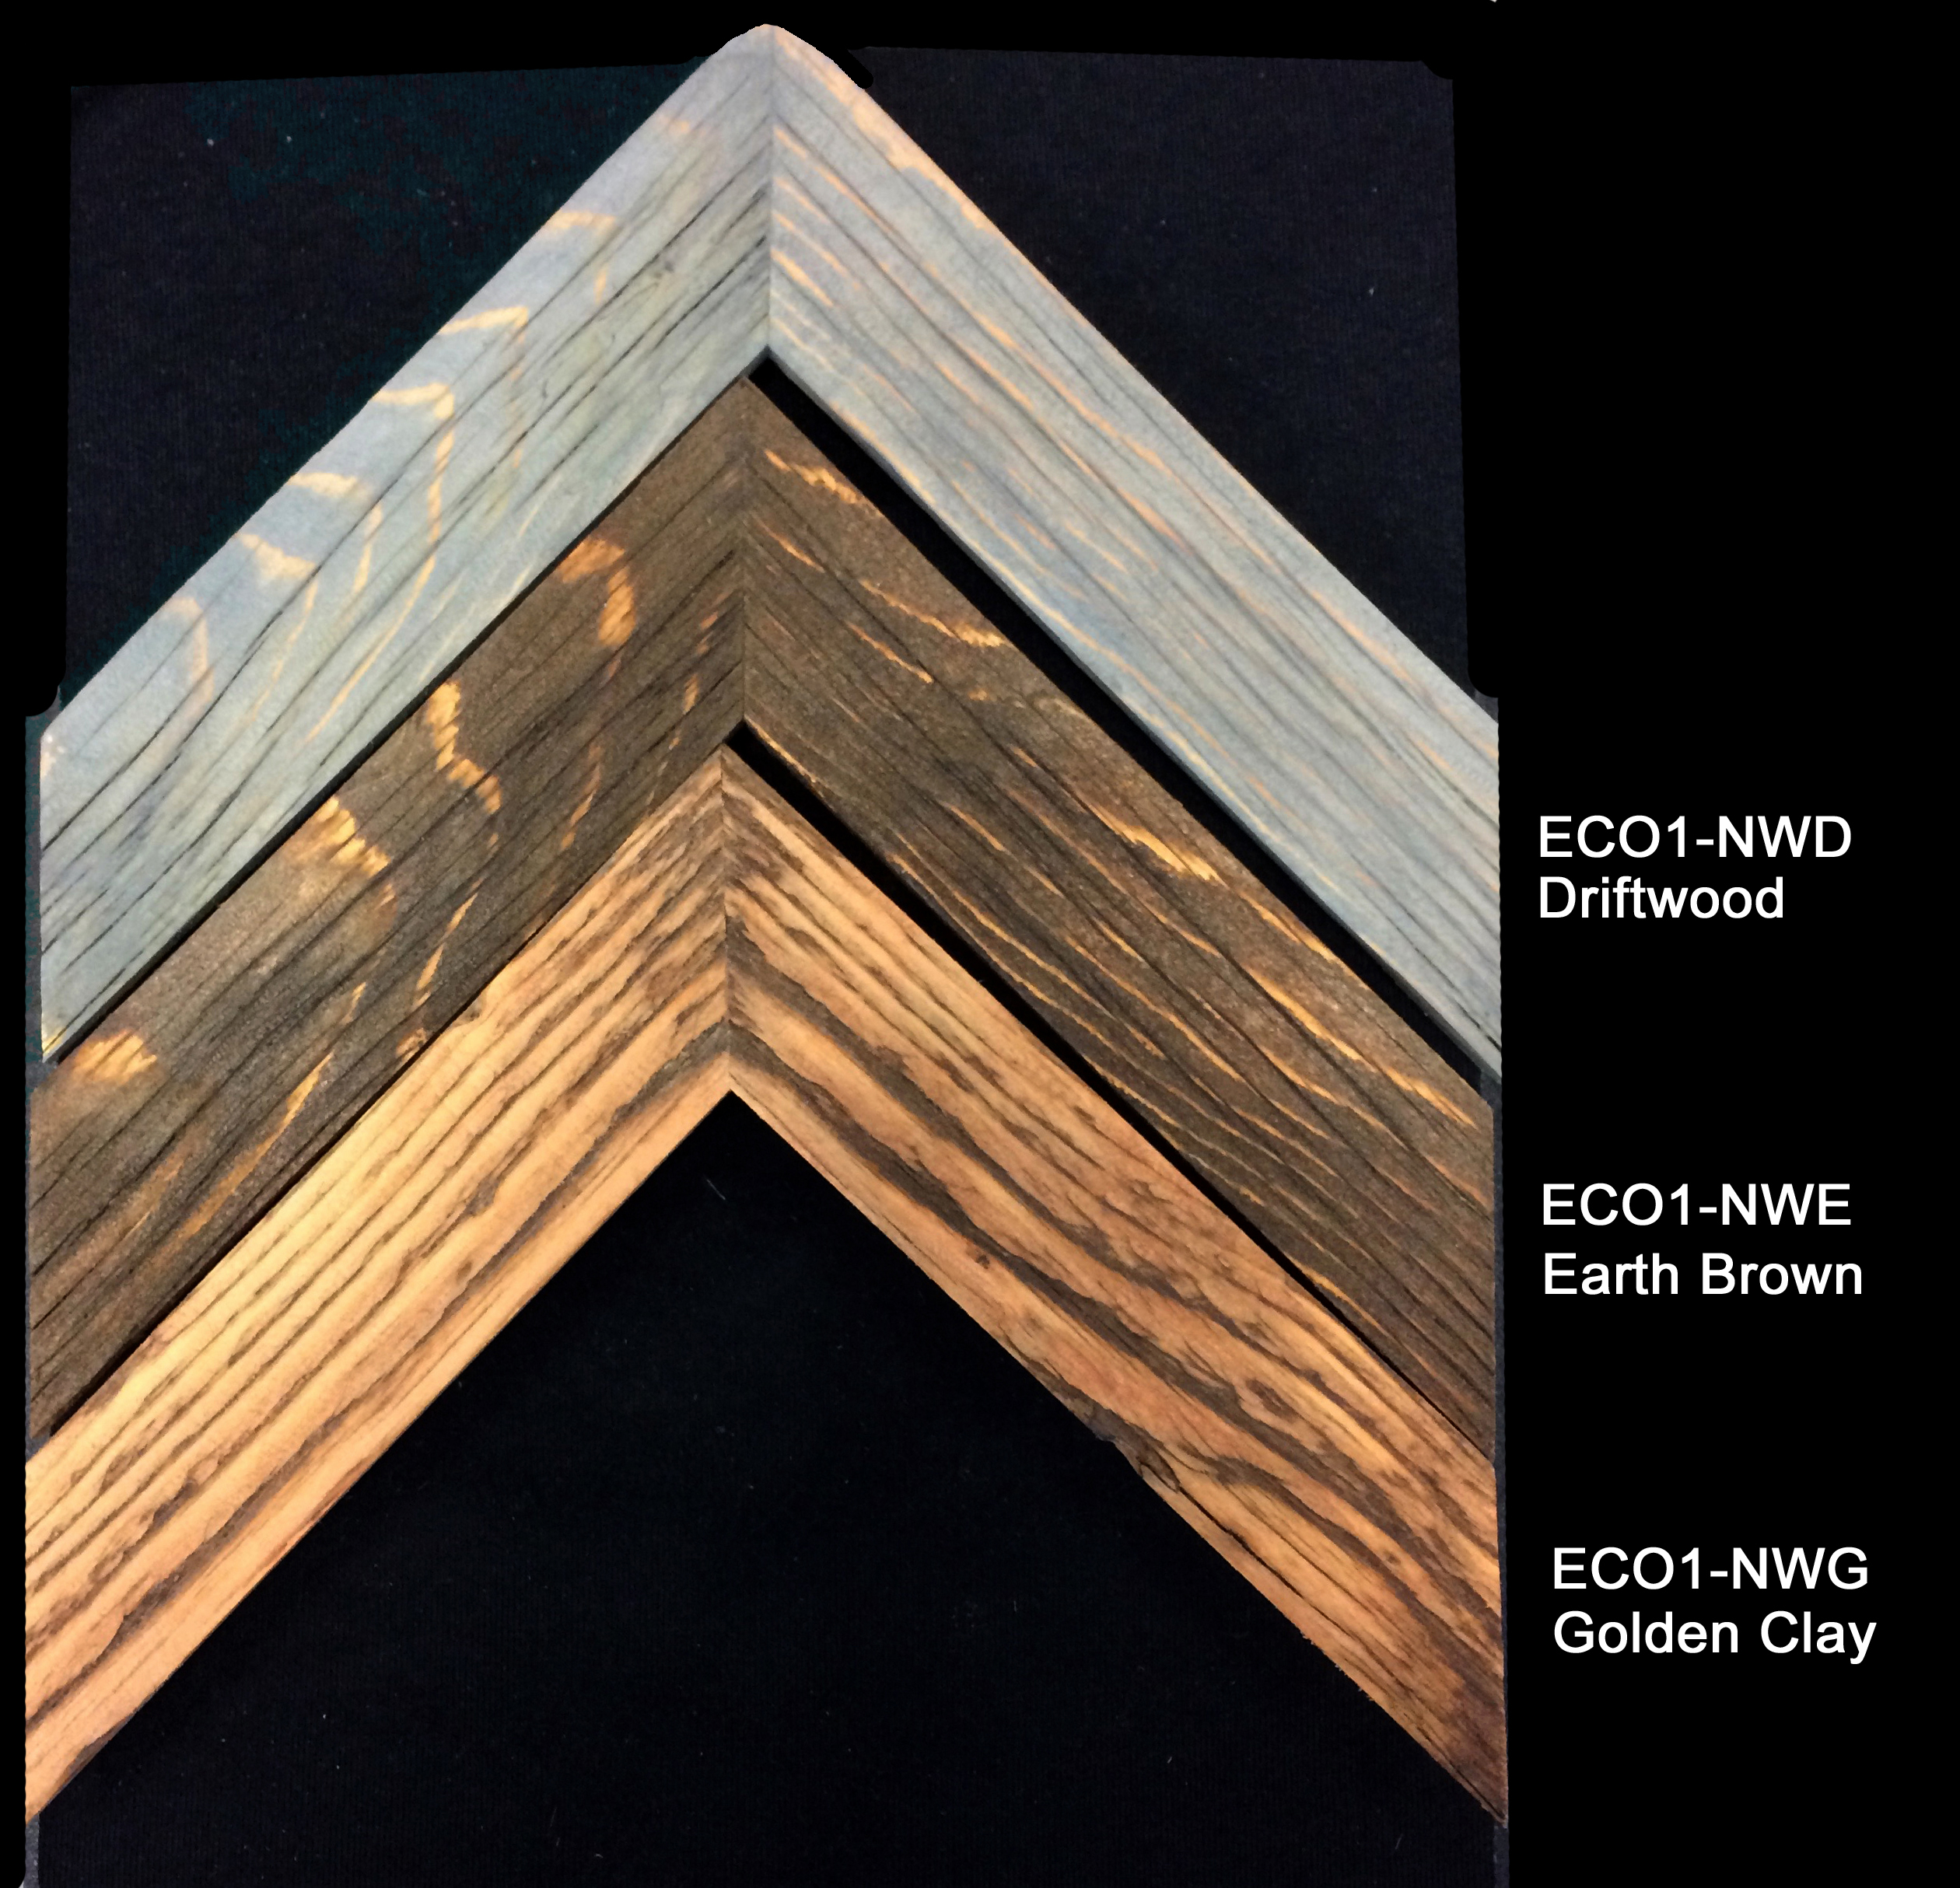 Barnwood stained natural colors